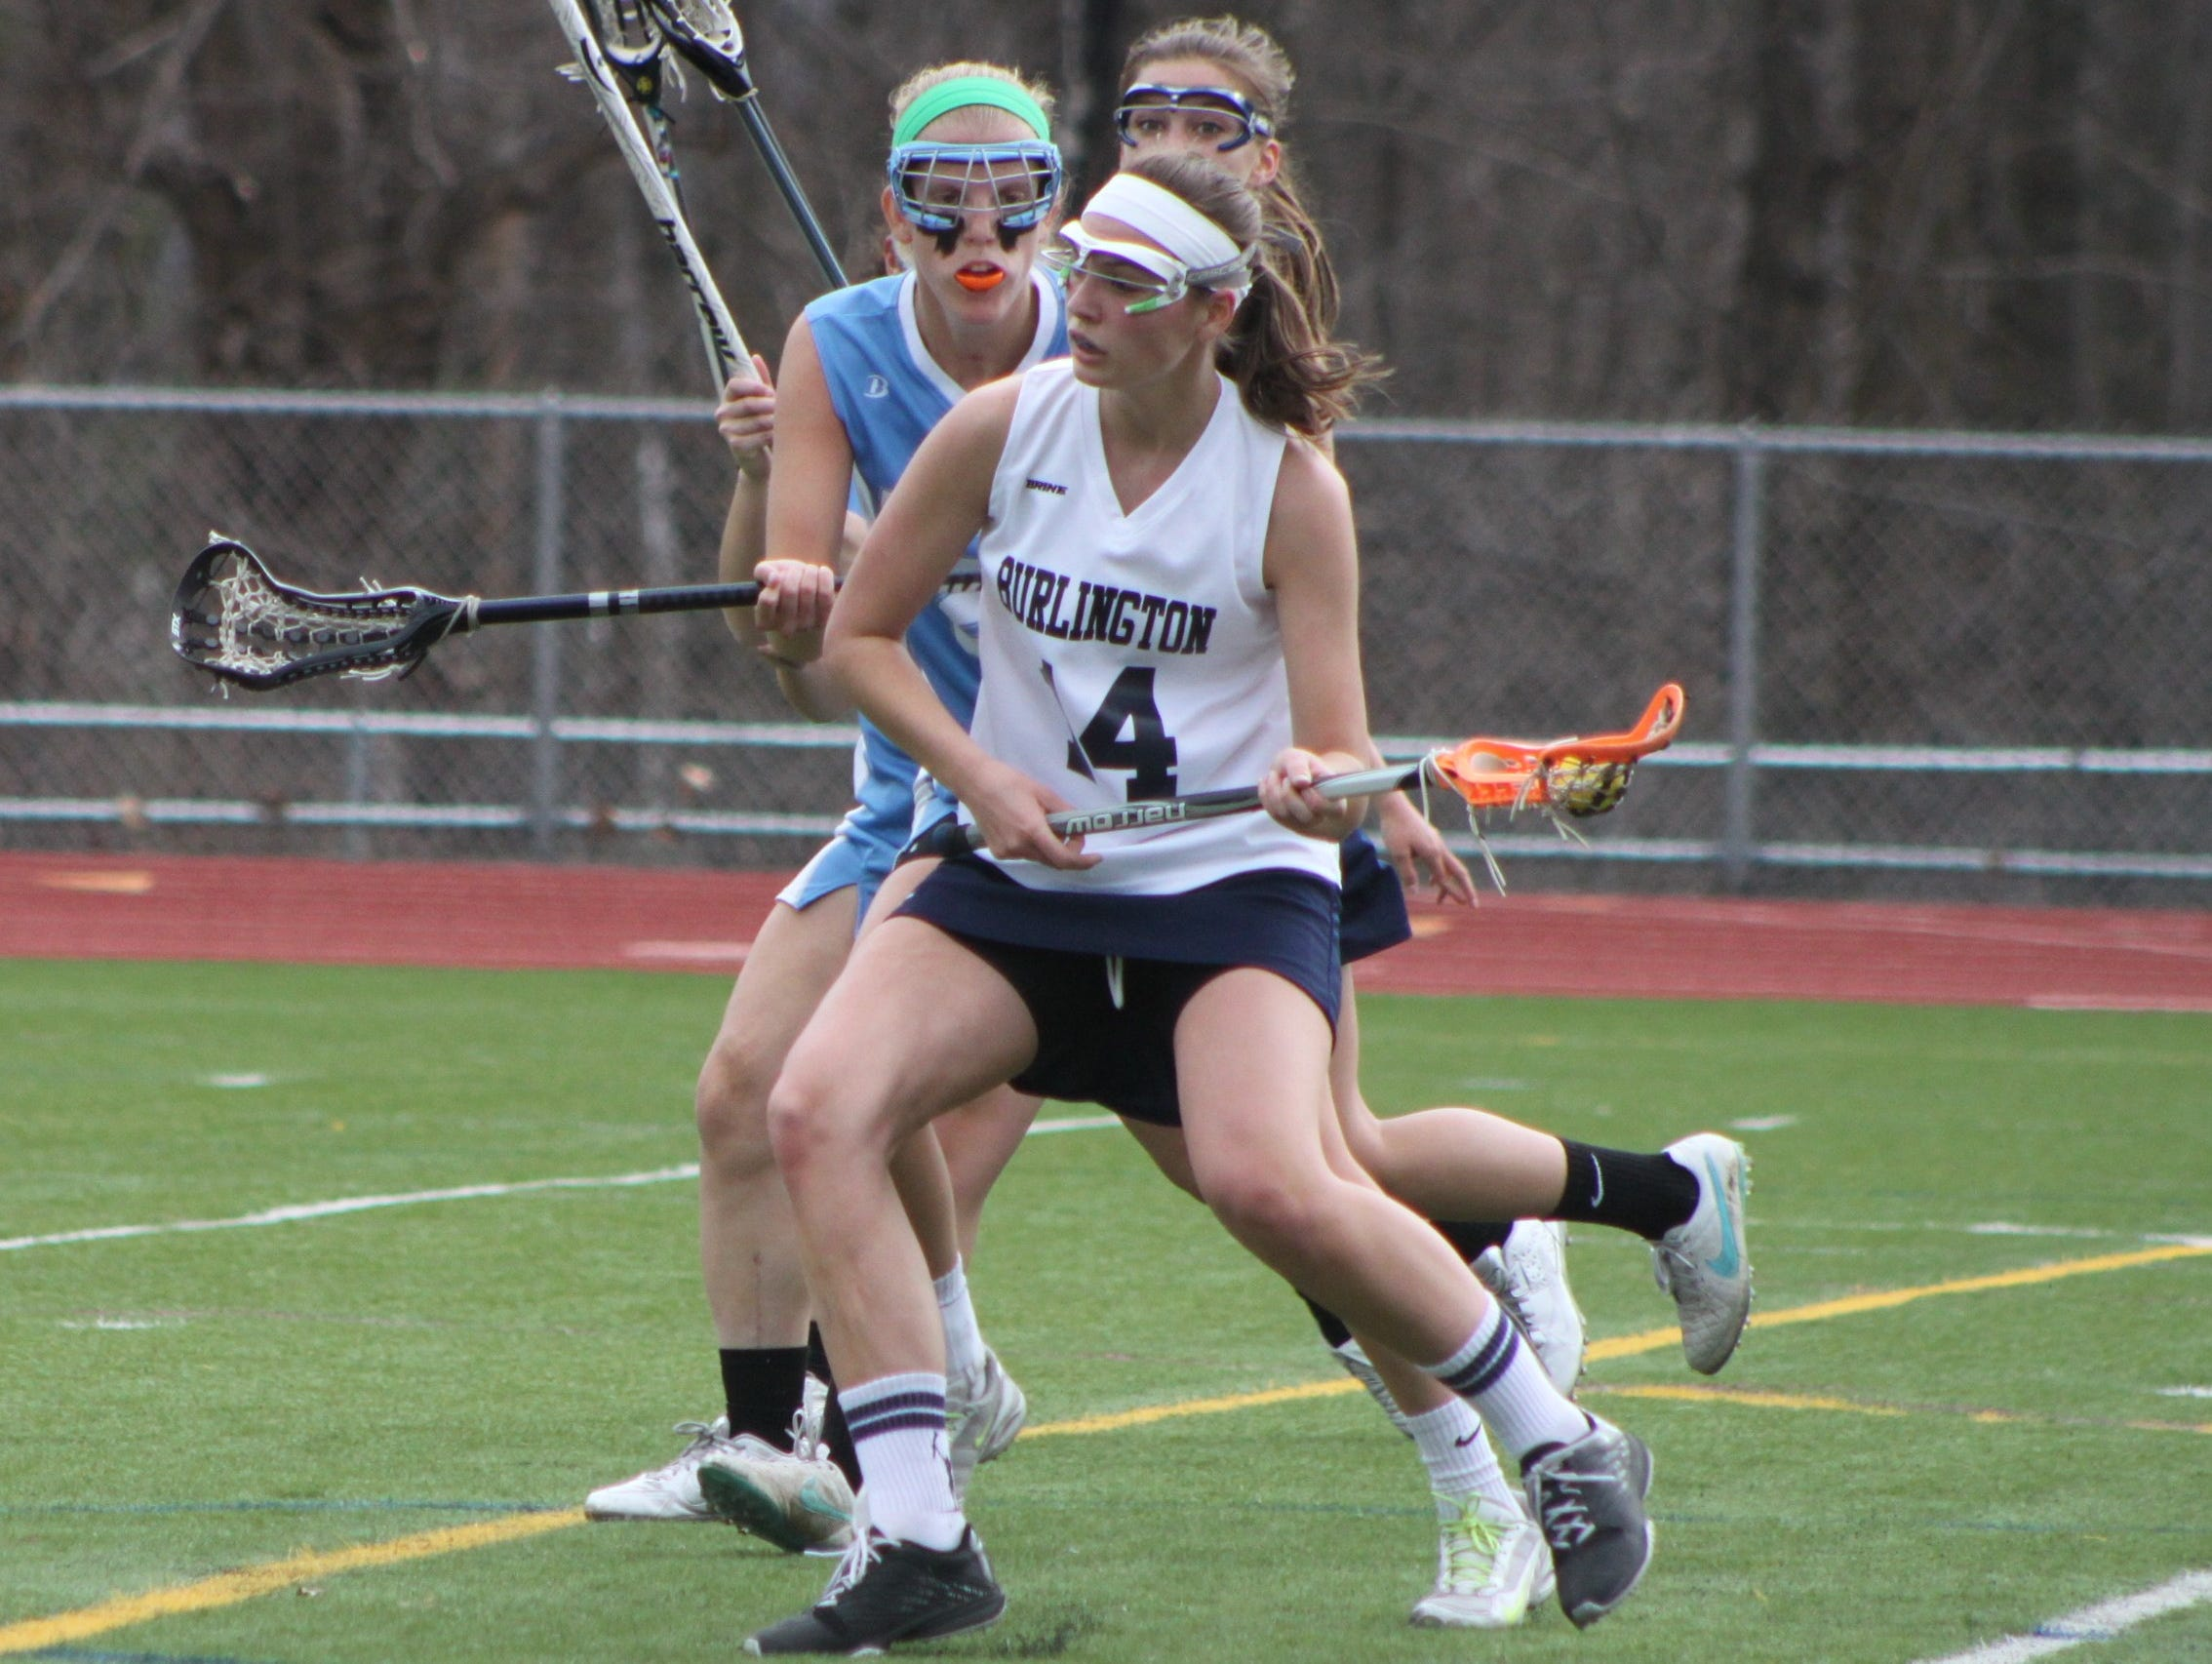 Burlington's Casey O'Neill protects the ball against South Burlington's Sarah Fisher during a girls lacrosse game on Thursday.